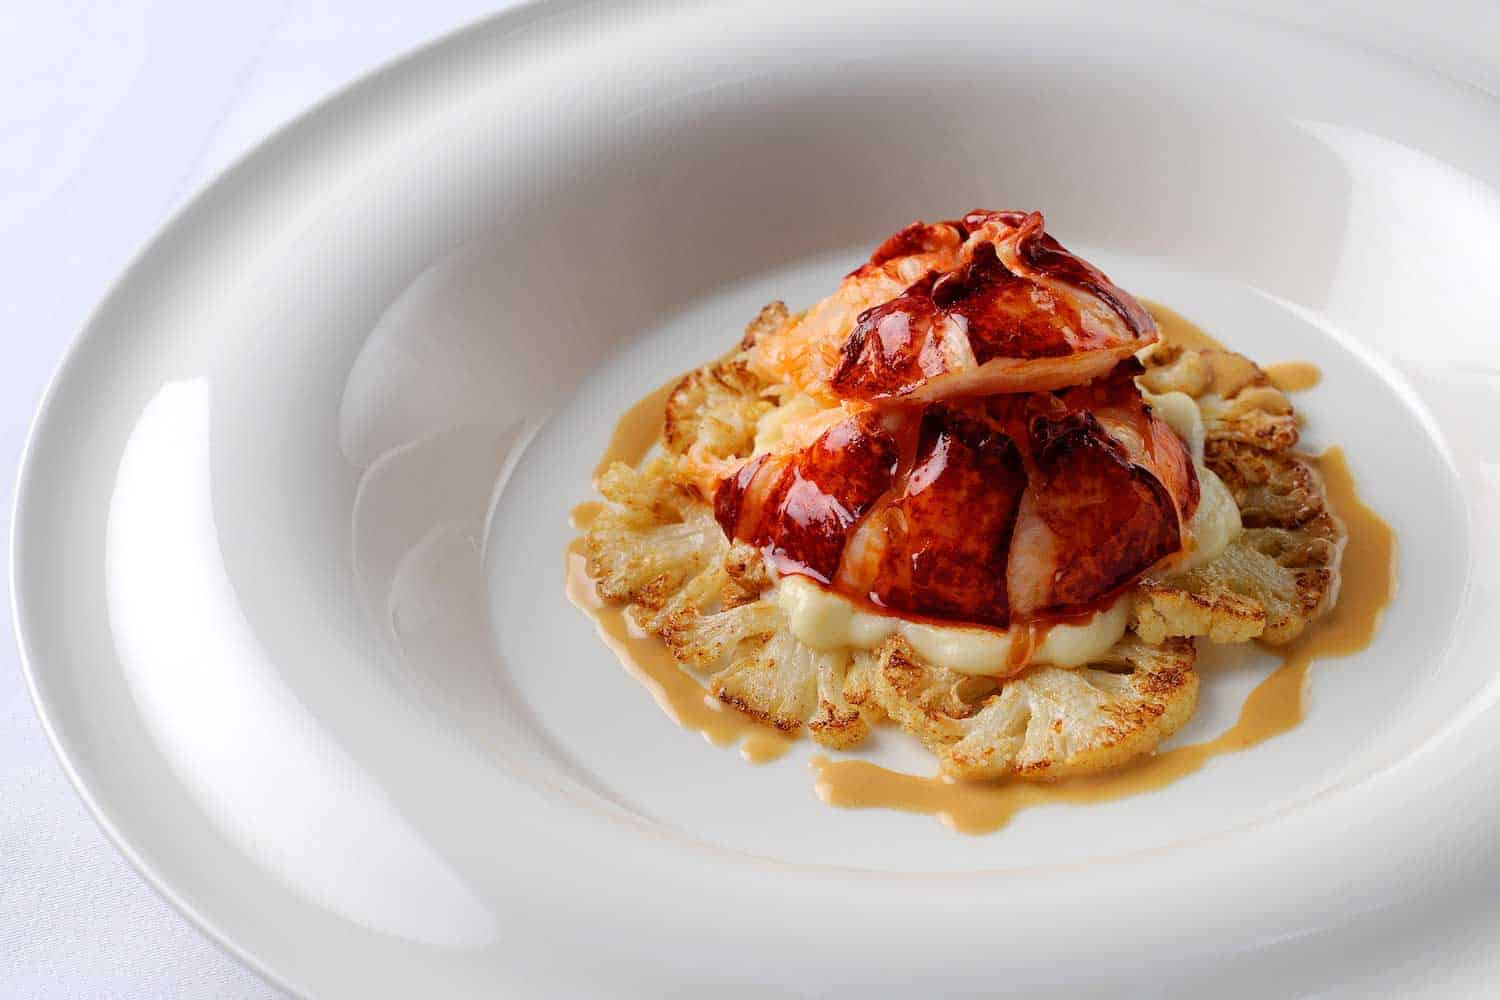 Poached-Lobster-Tail-with-Cauliflower-and-Lobster-Butter-Sauce1